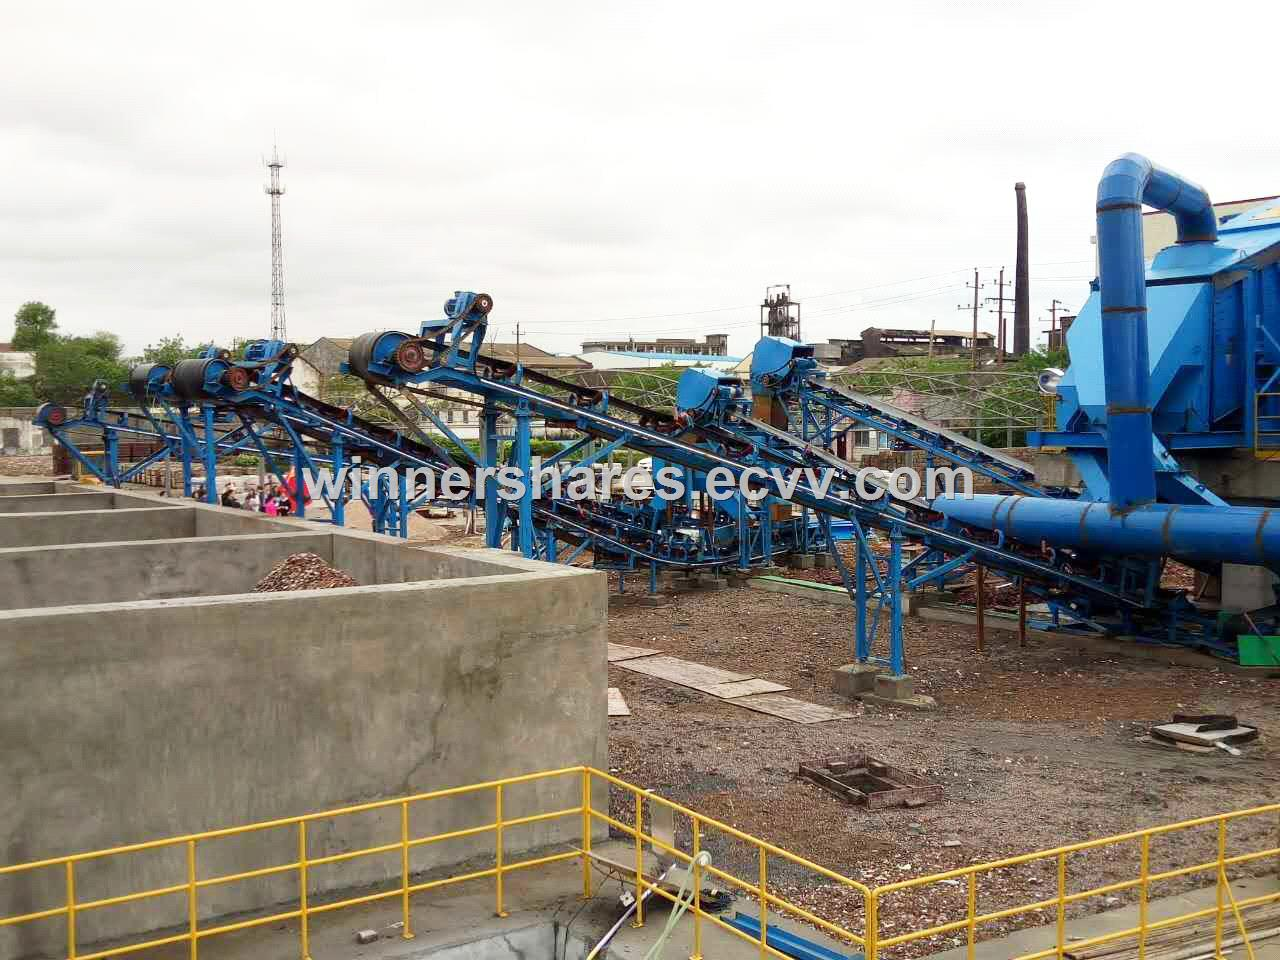 construction waste treatment system